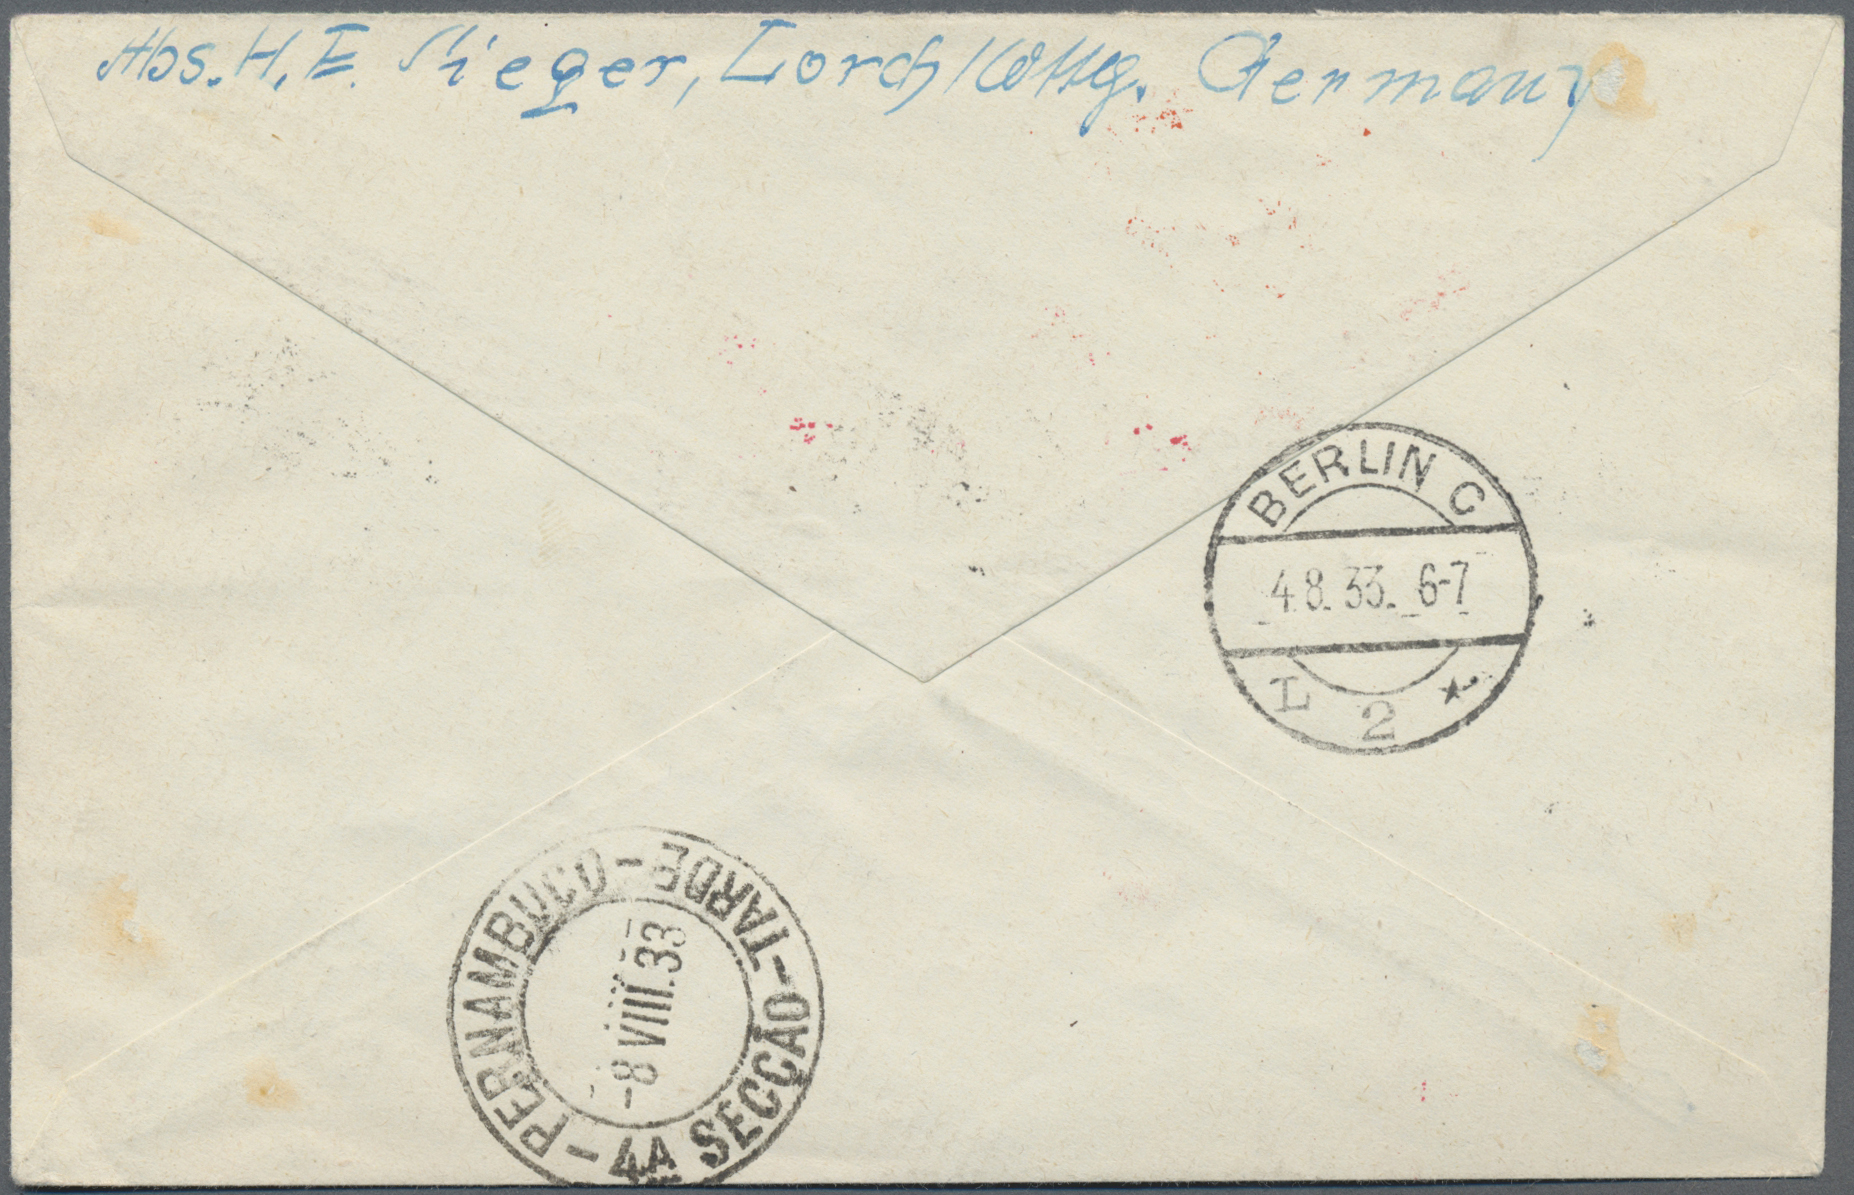 Lot 13528 - zeppelinpost deutschland  -  Auktionshaus Christoph Gärtner GmbH & Co. KG Sale #43 Asia, Overseas, Air & Ships, Mail, Spain, Day 4